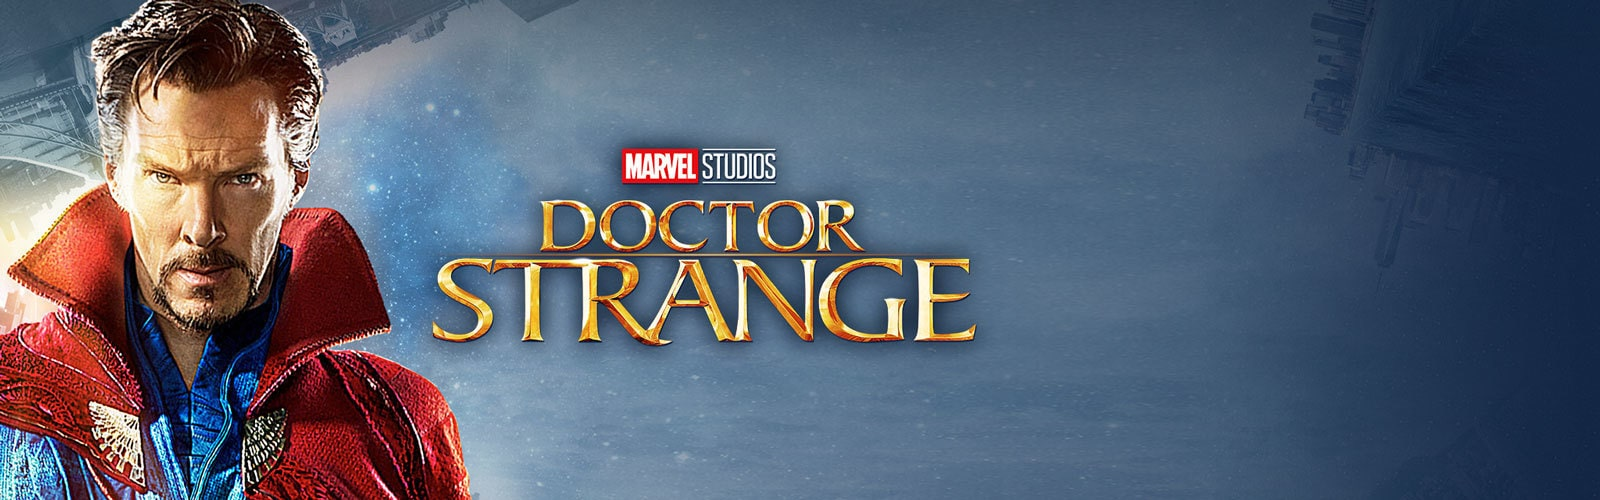 Doctor Strange on Digital HD Promo - At Home - PH